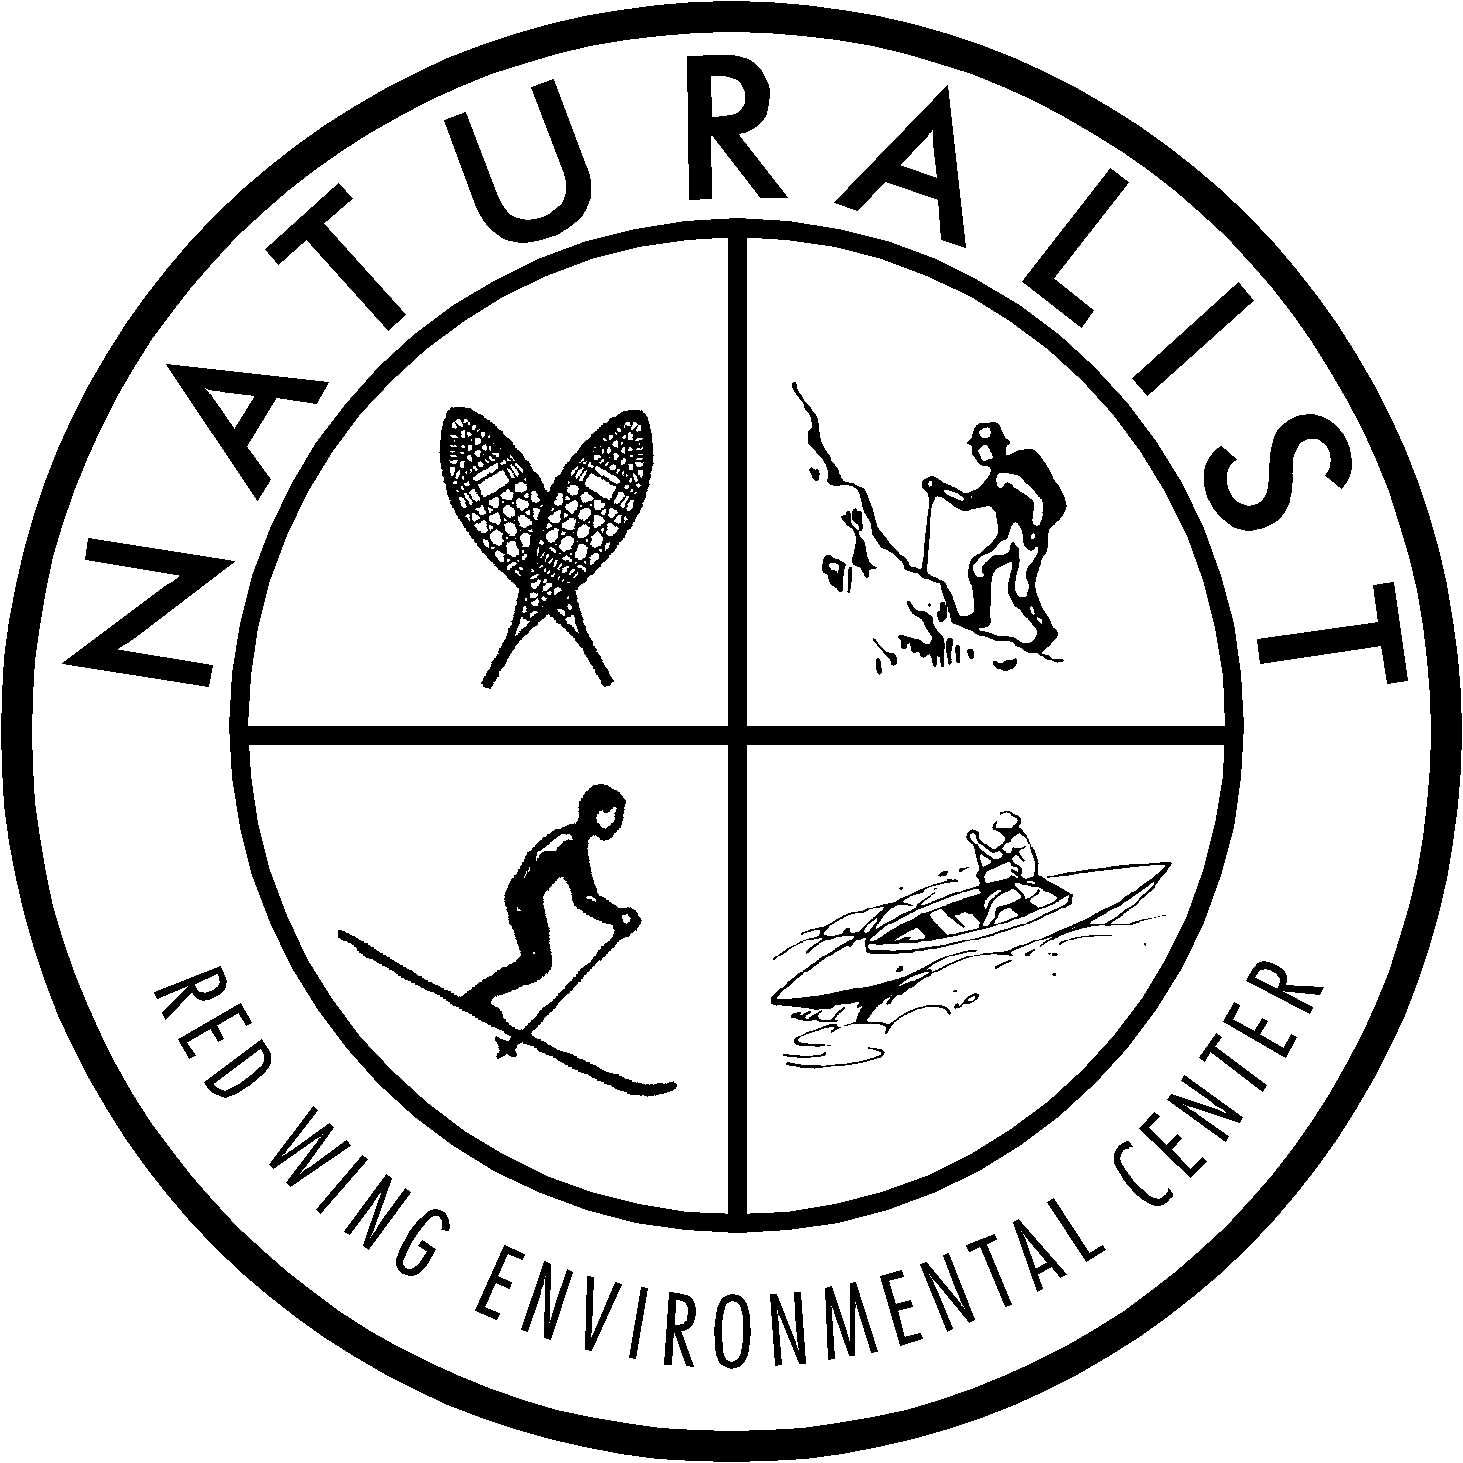 Black and white logo of the Red Wing Environmental Learning Center